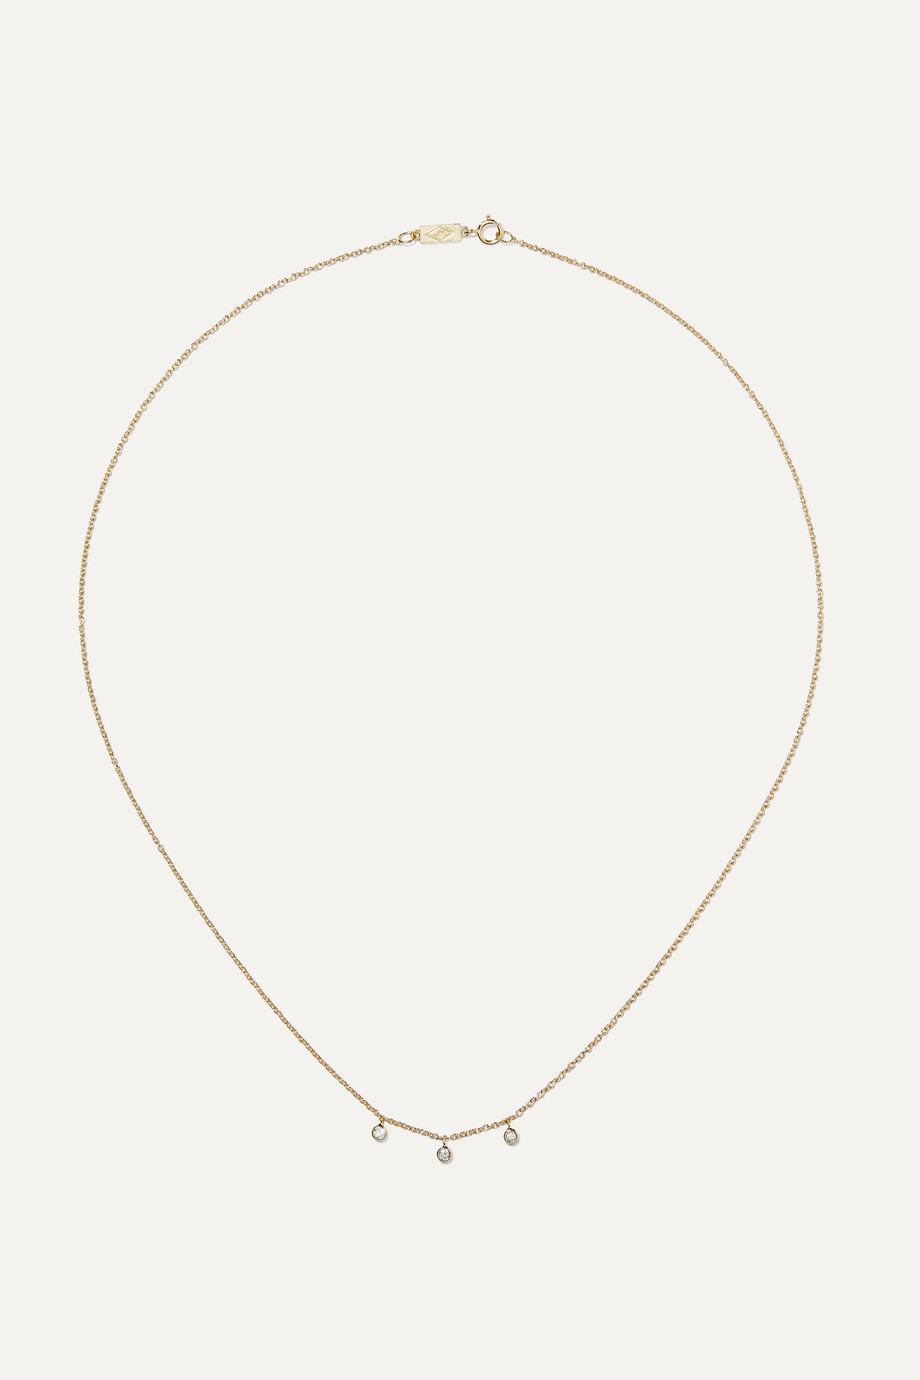 Jennifer Meyer 18-karat gold diamond necklace